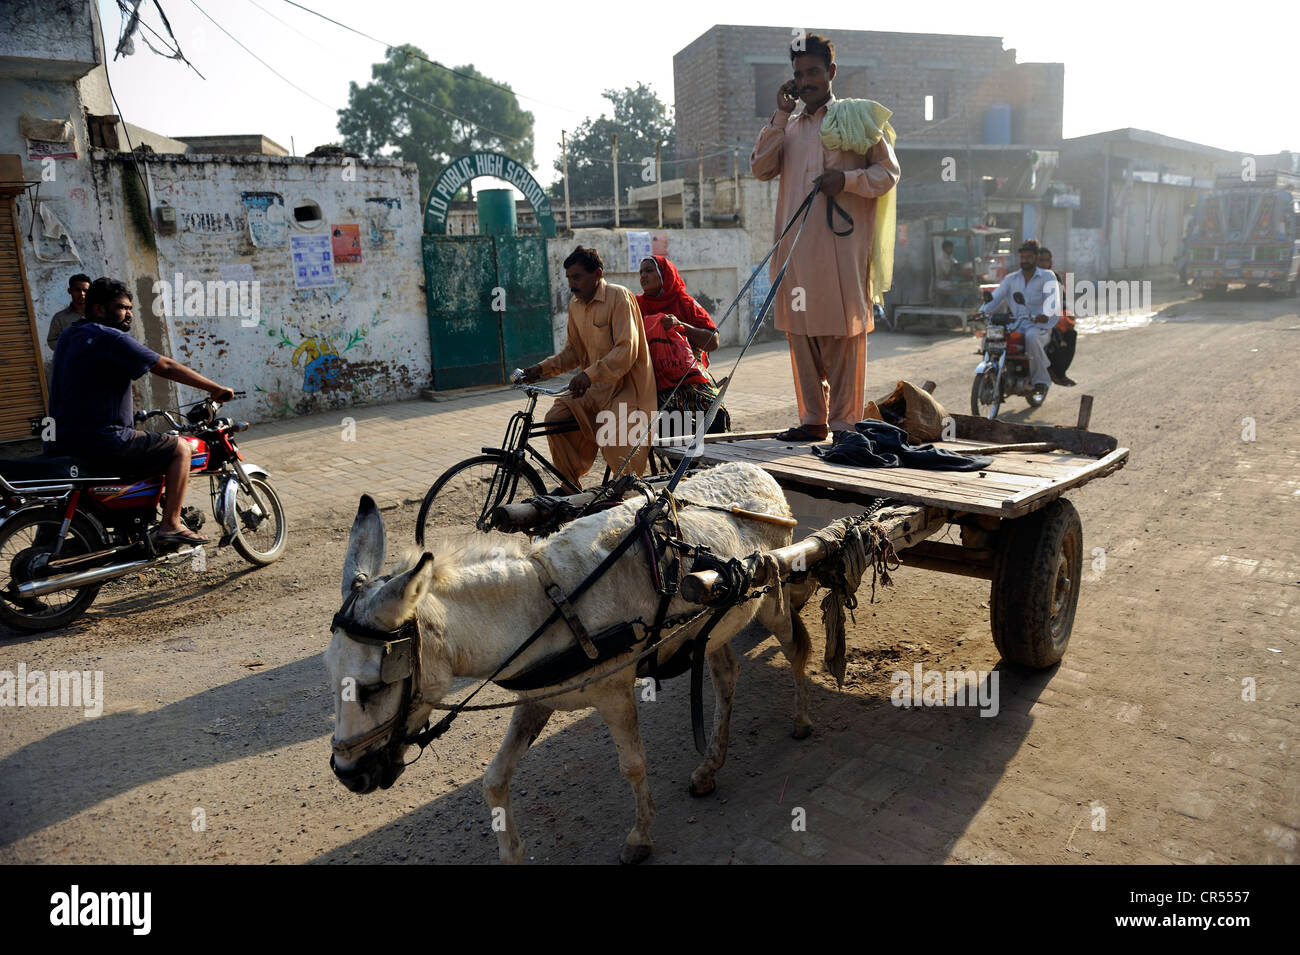 Man riding a donkey cart speaking on a mobile phone, street scene in the Christian quarter of Youhanabad, Lahore, - Stock Image